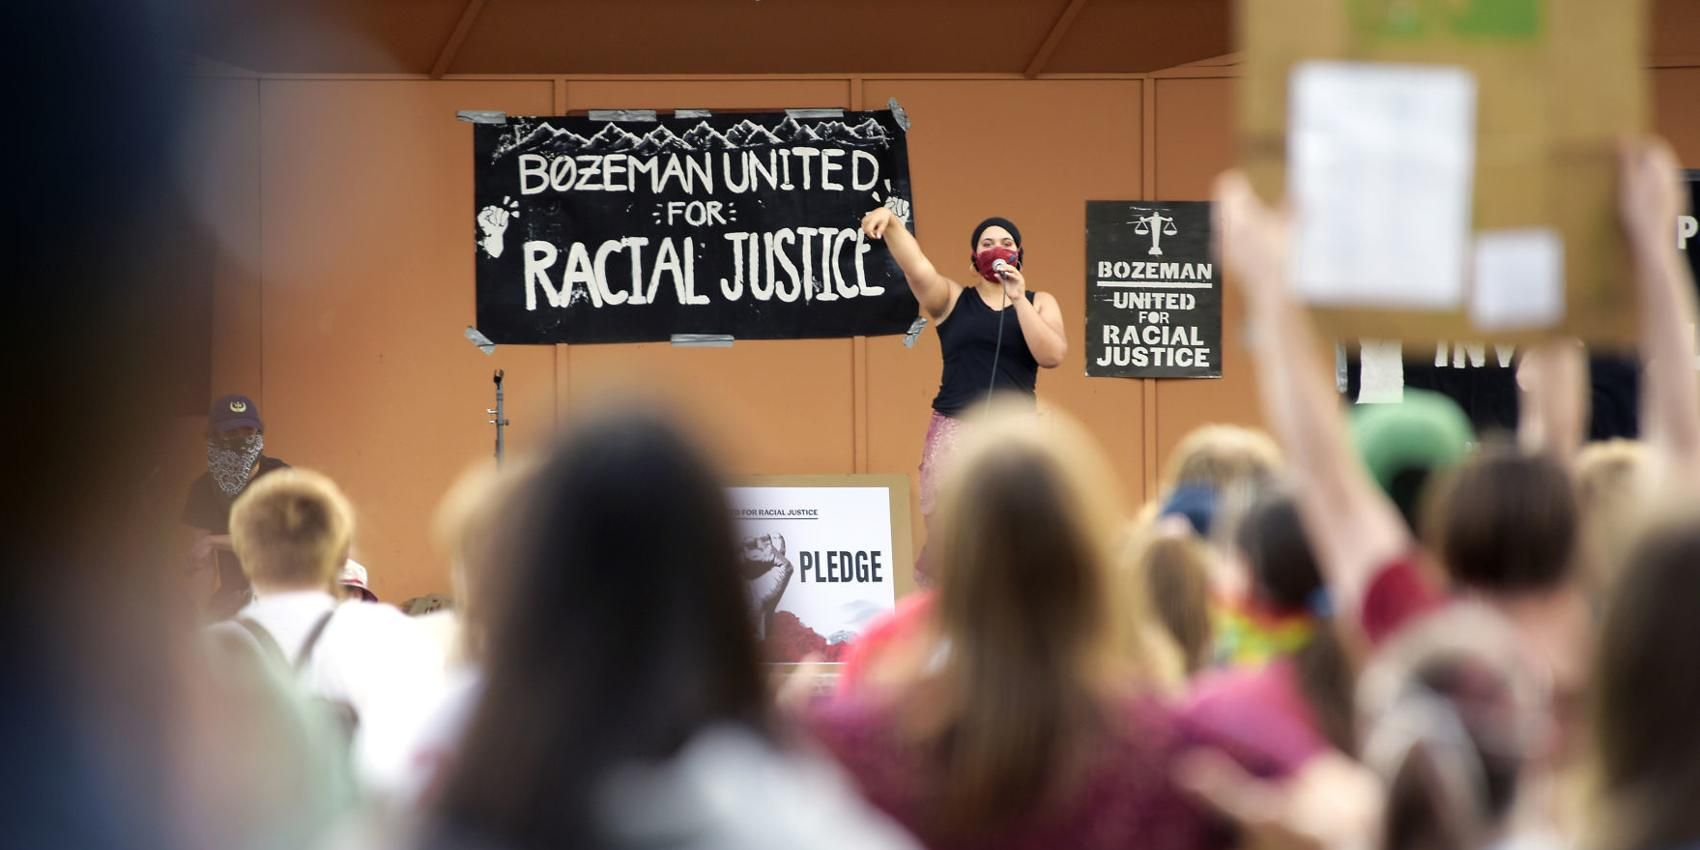 Under the microscope: People of color hope for change in Montana, U.S.